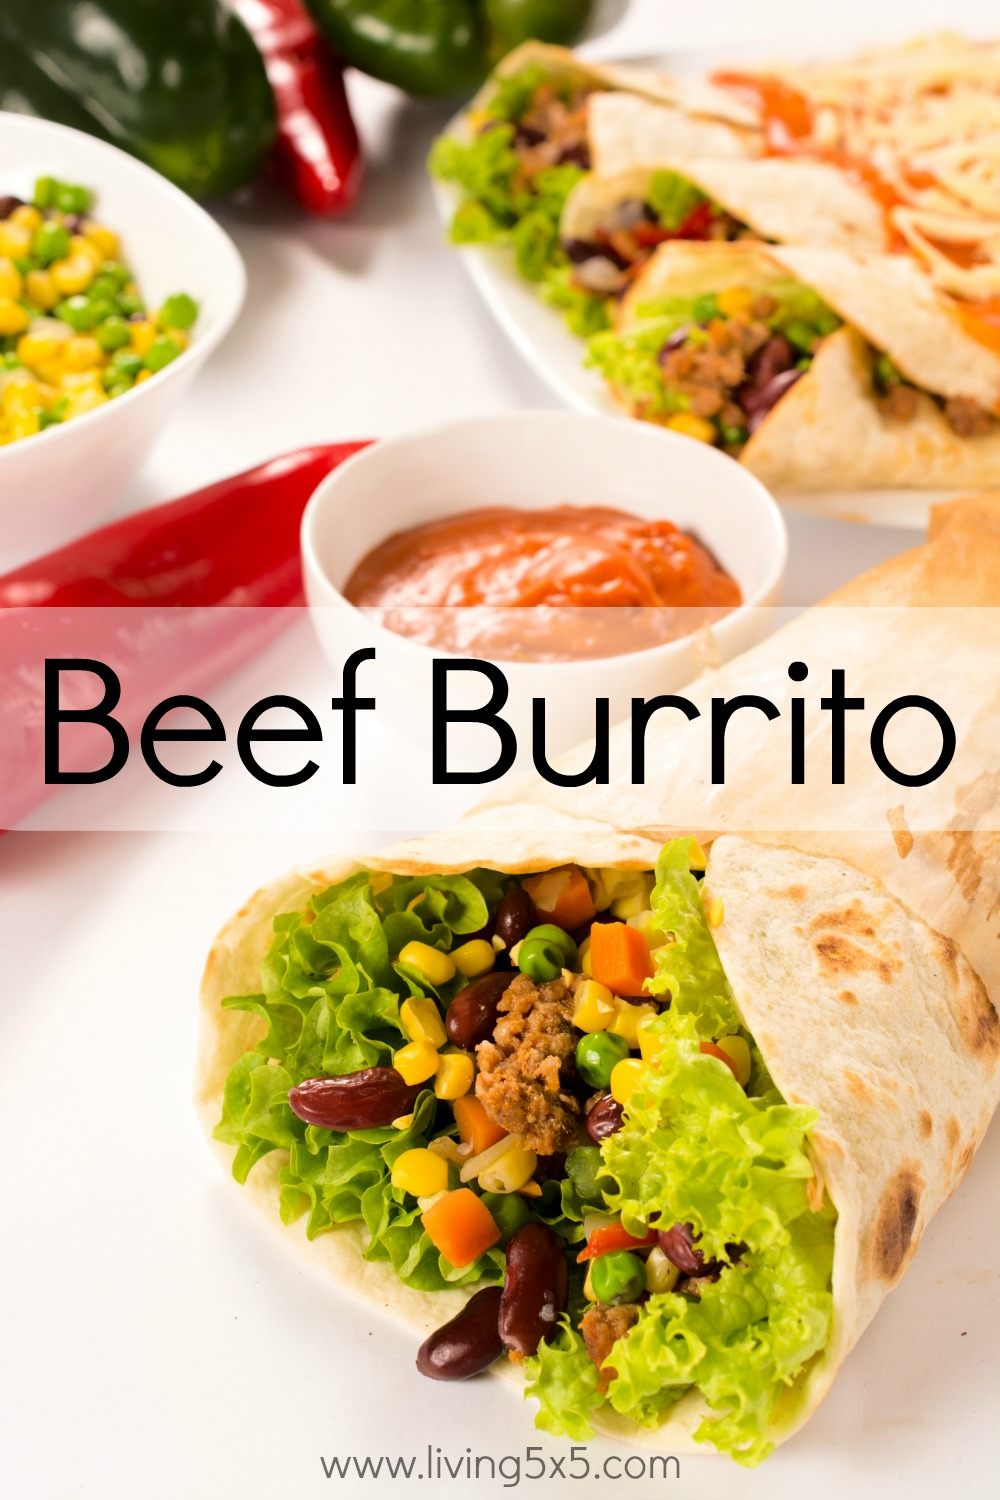 Burritos doesn't have to be complicated. Get this easy beef burrito recipe from Taste of Home.